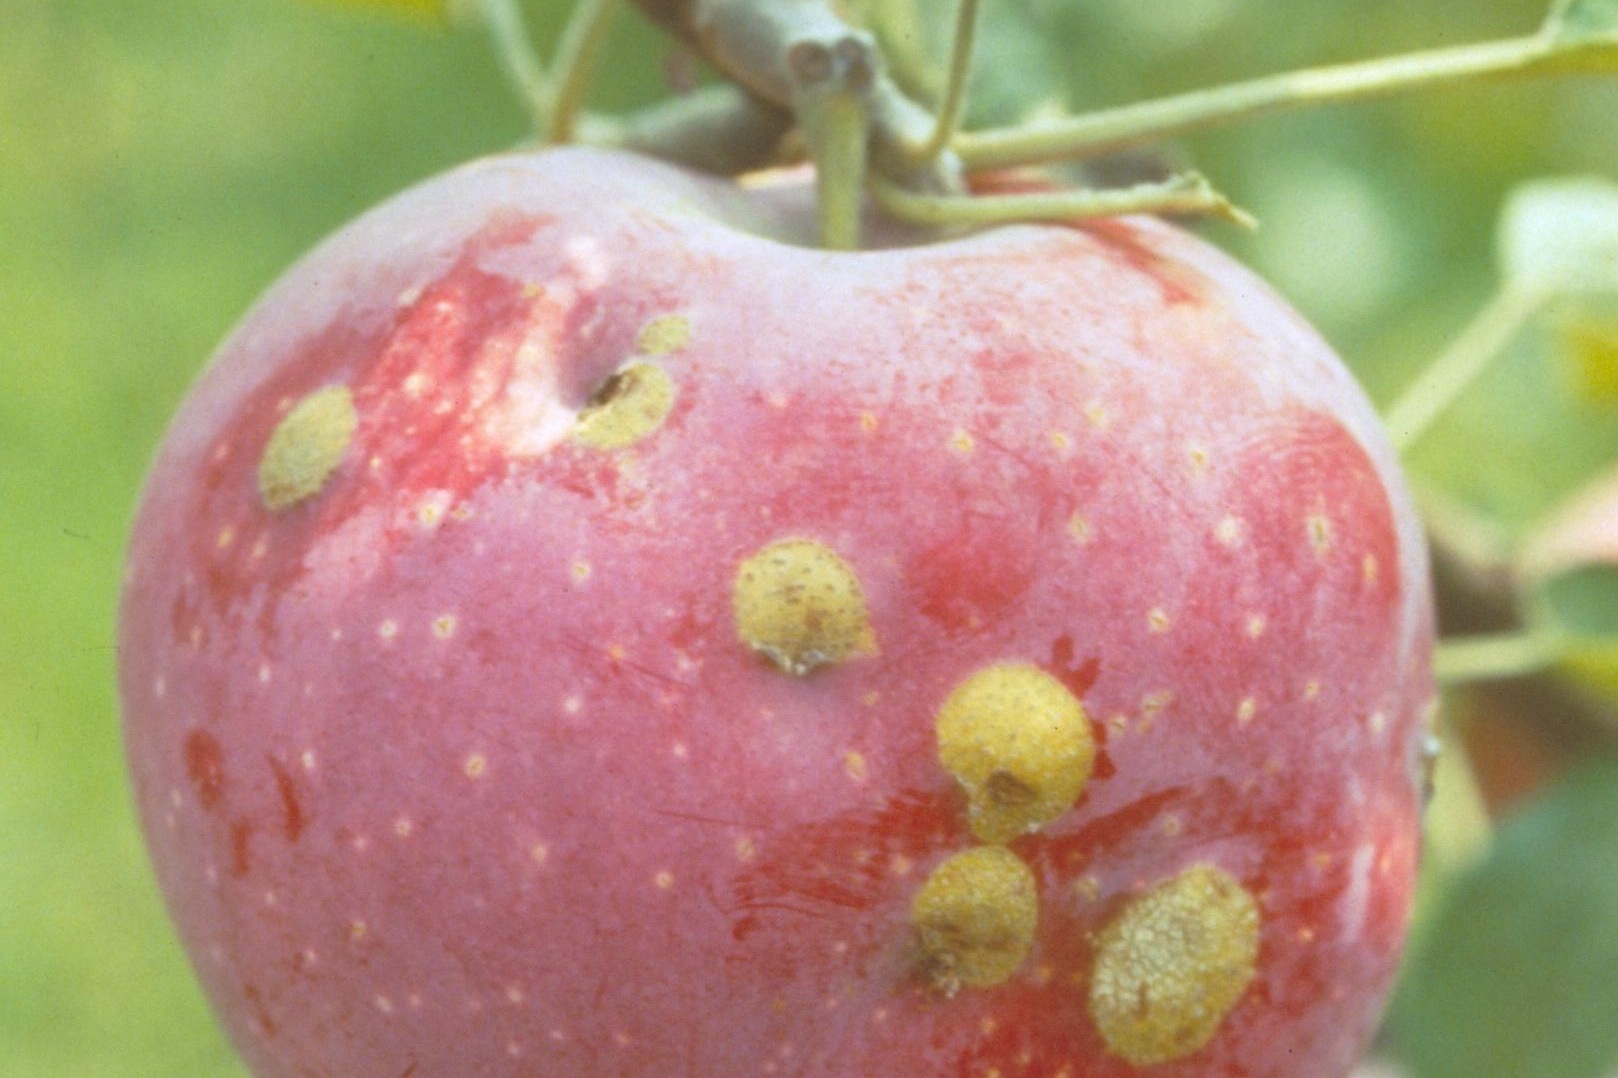 Plum Curculio  is a small beetle that feeds on unripe apples early in the season. The blemish seen is a scar leftover from this early damage. These scarred apples may be eaten right off the tree, or you may cut away the scar.  Photo: Ricardo Bessin, University of Kentucky